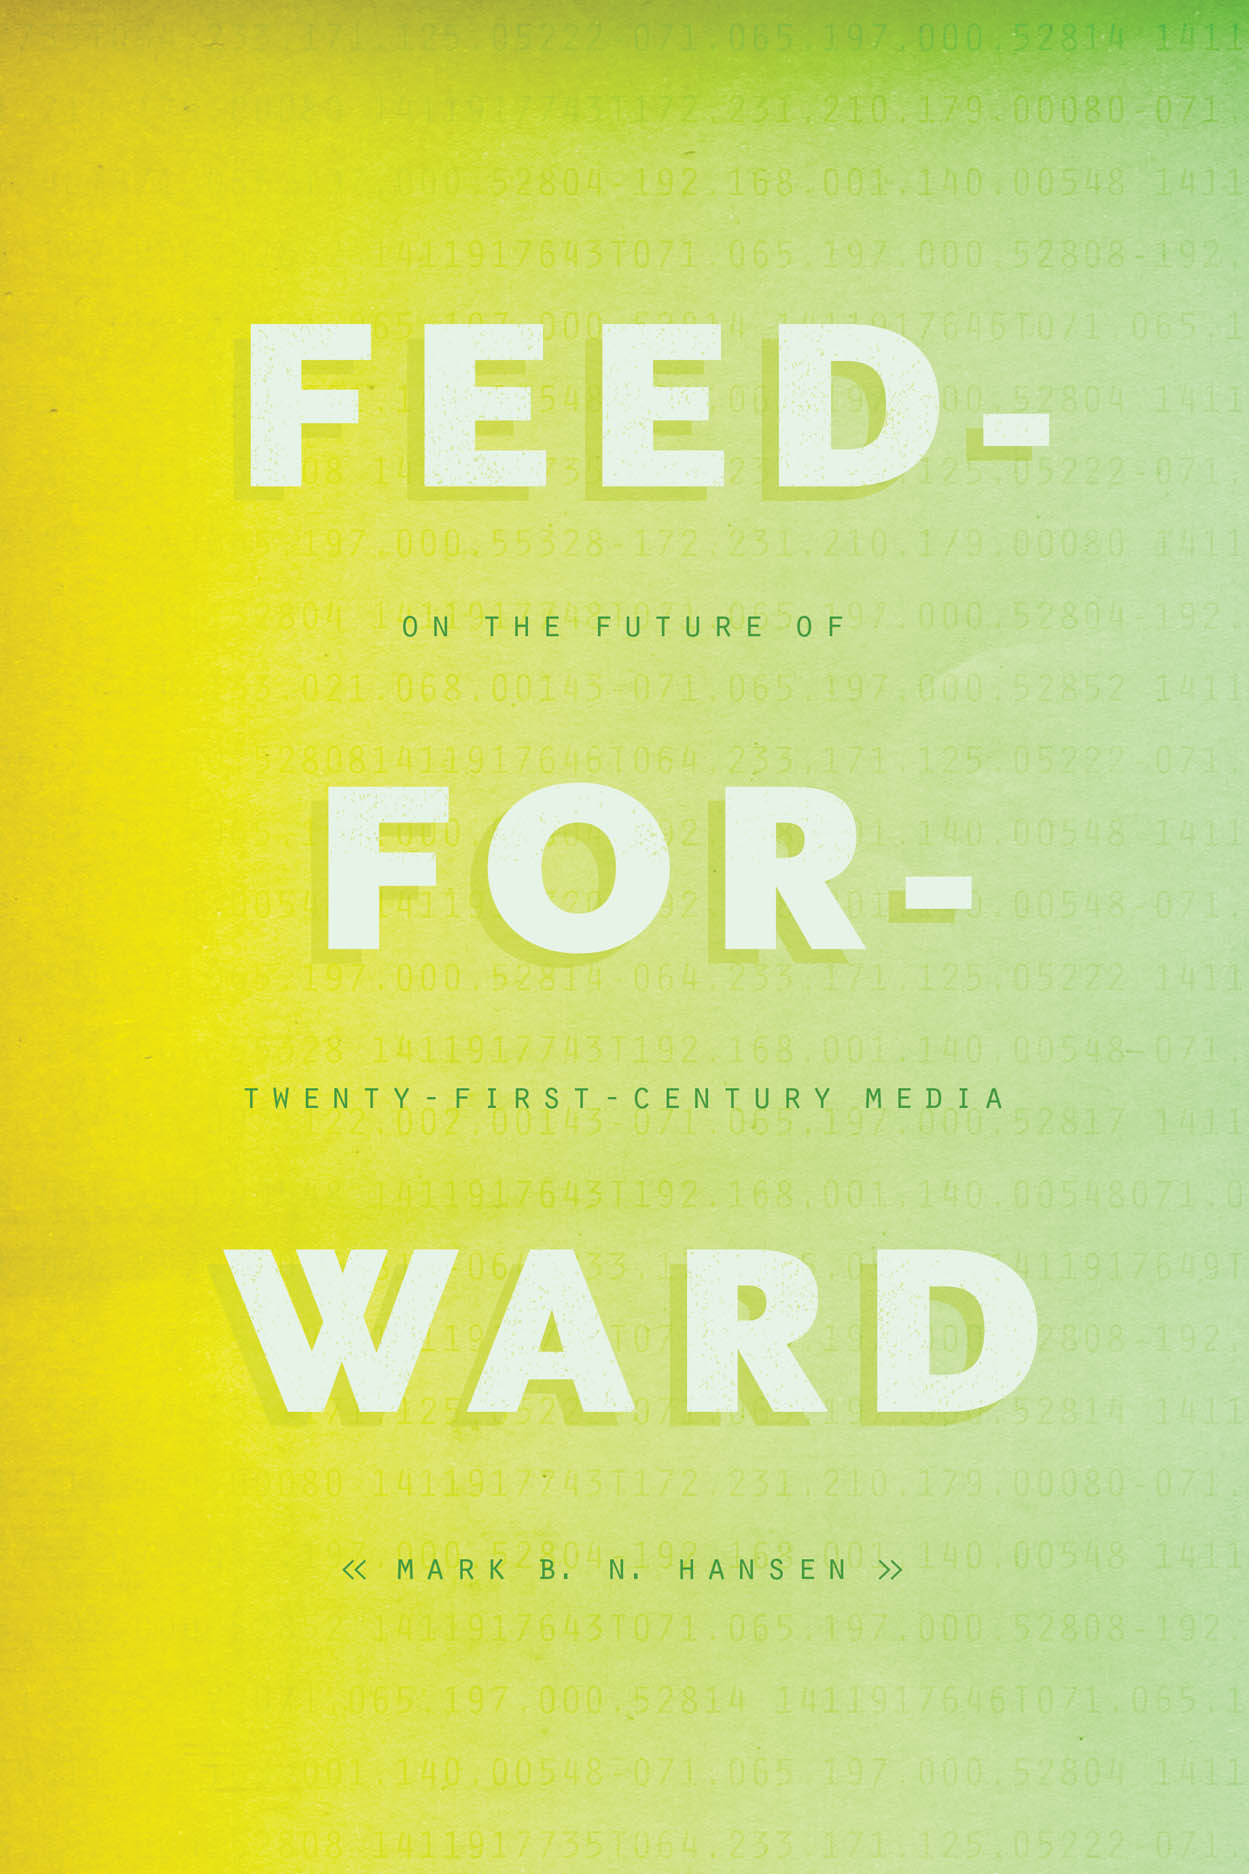 Feed-Forward